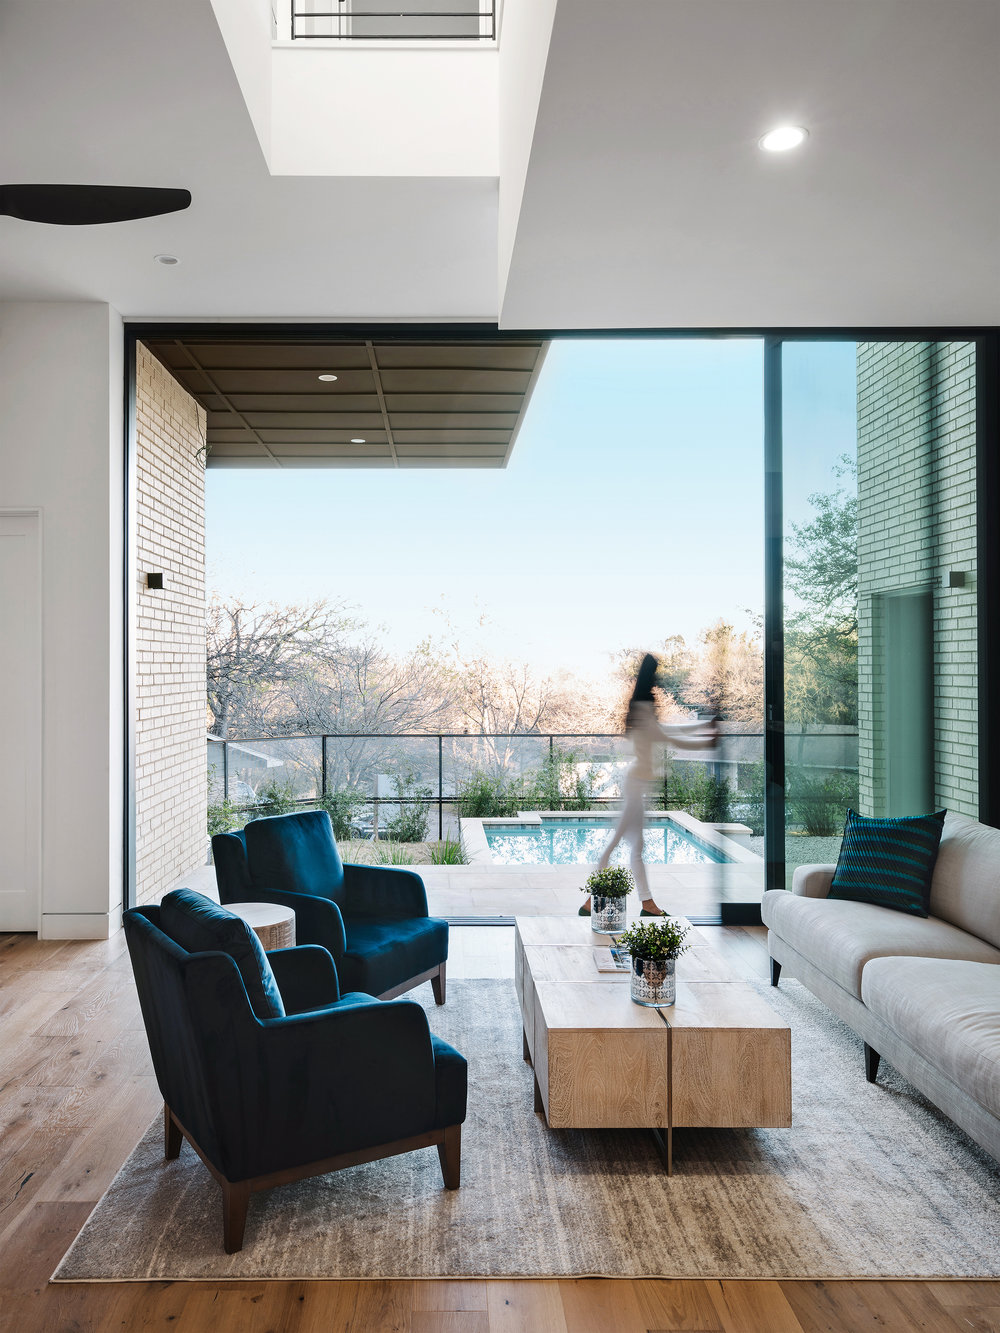 20 Allotted Space House by Matt Fajkus Architecture. Photo by Chase Daniel.jpg